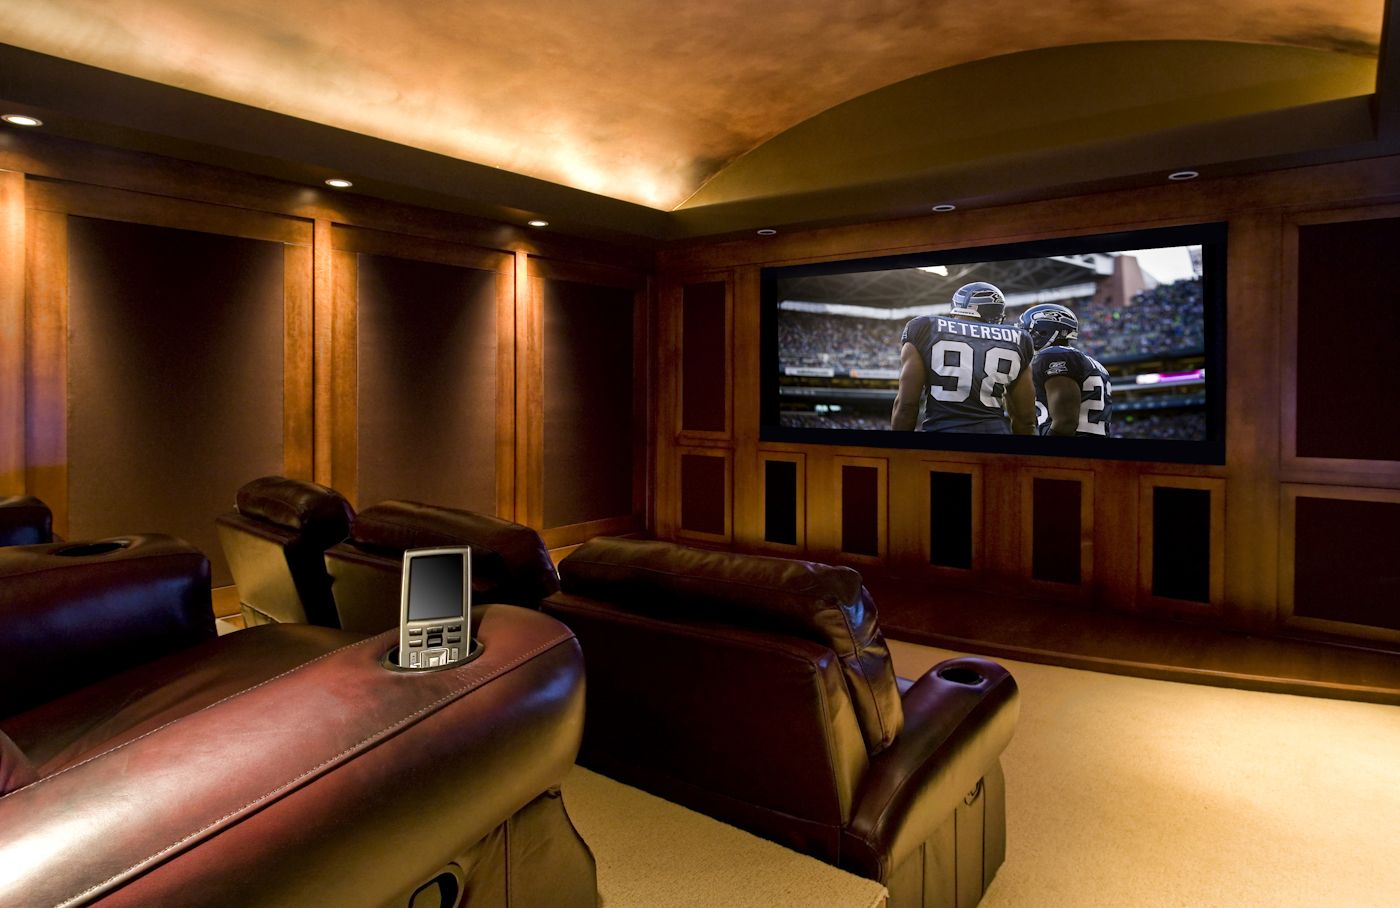 Media Room Ideas For The Home Pinterest Room Ideas